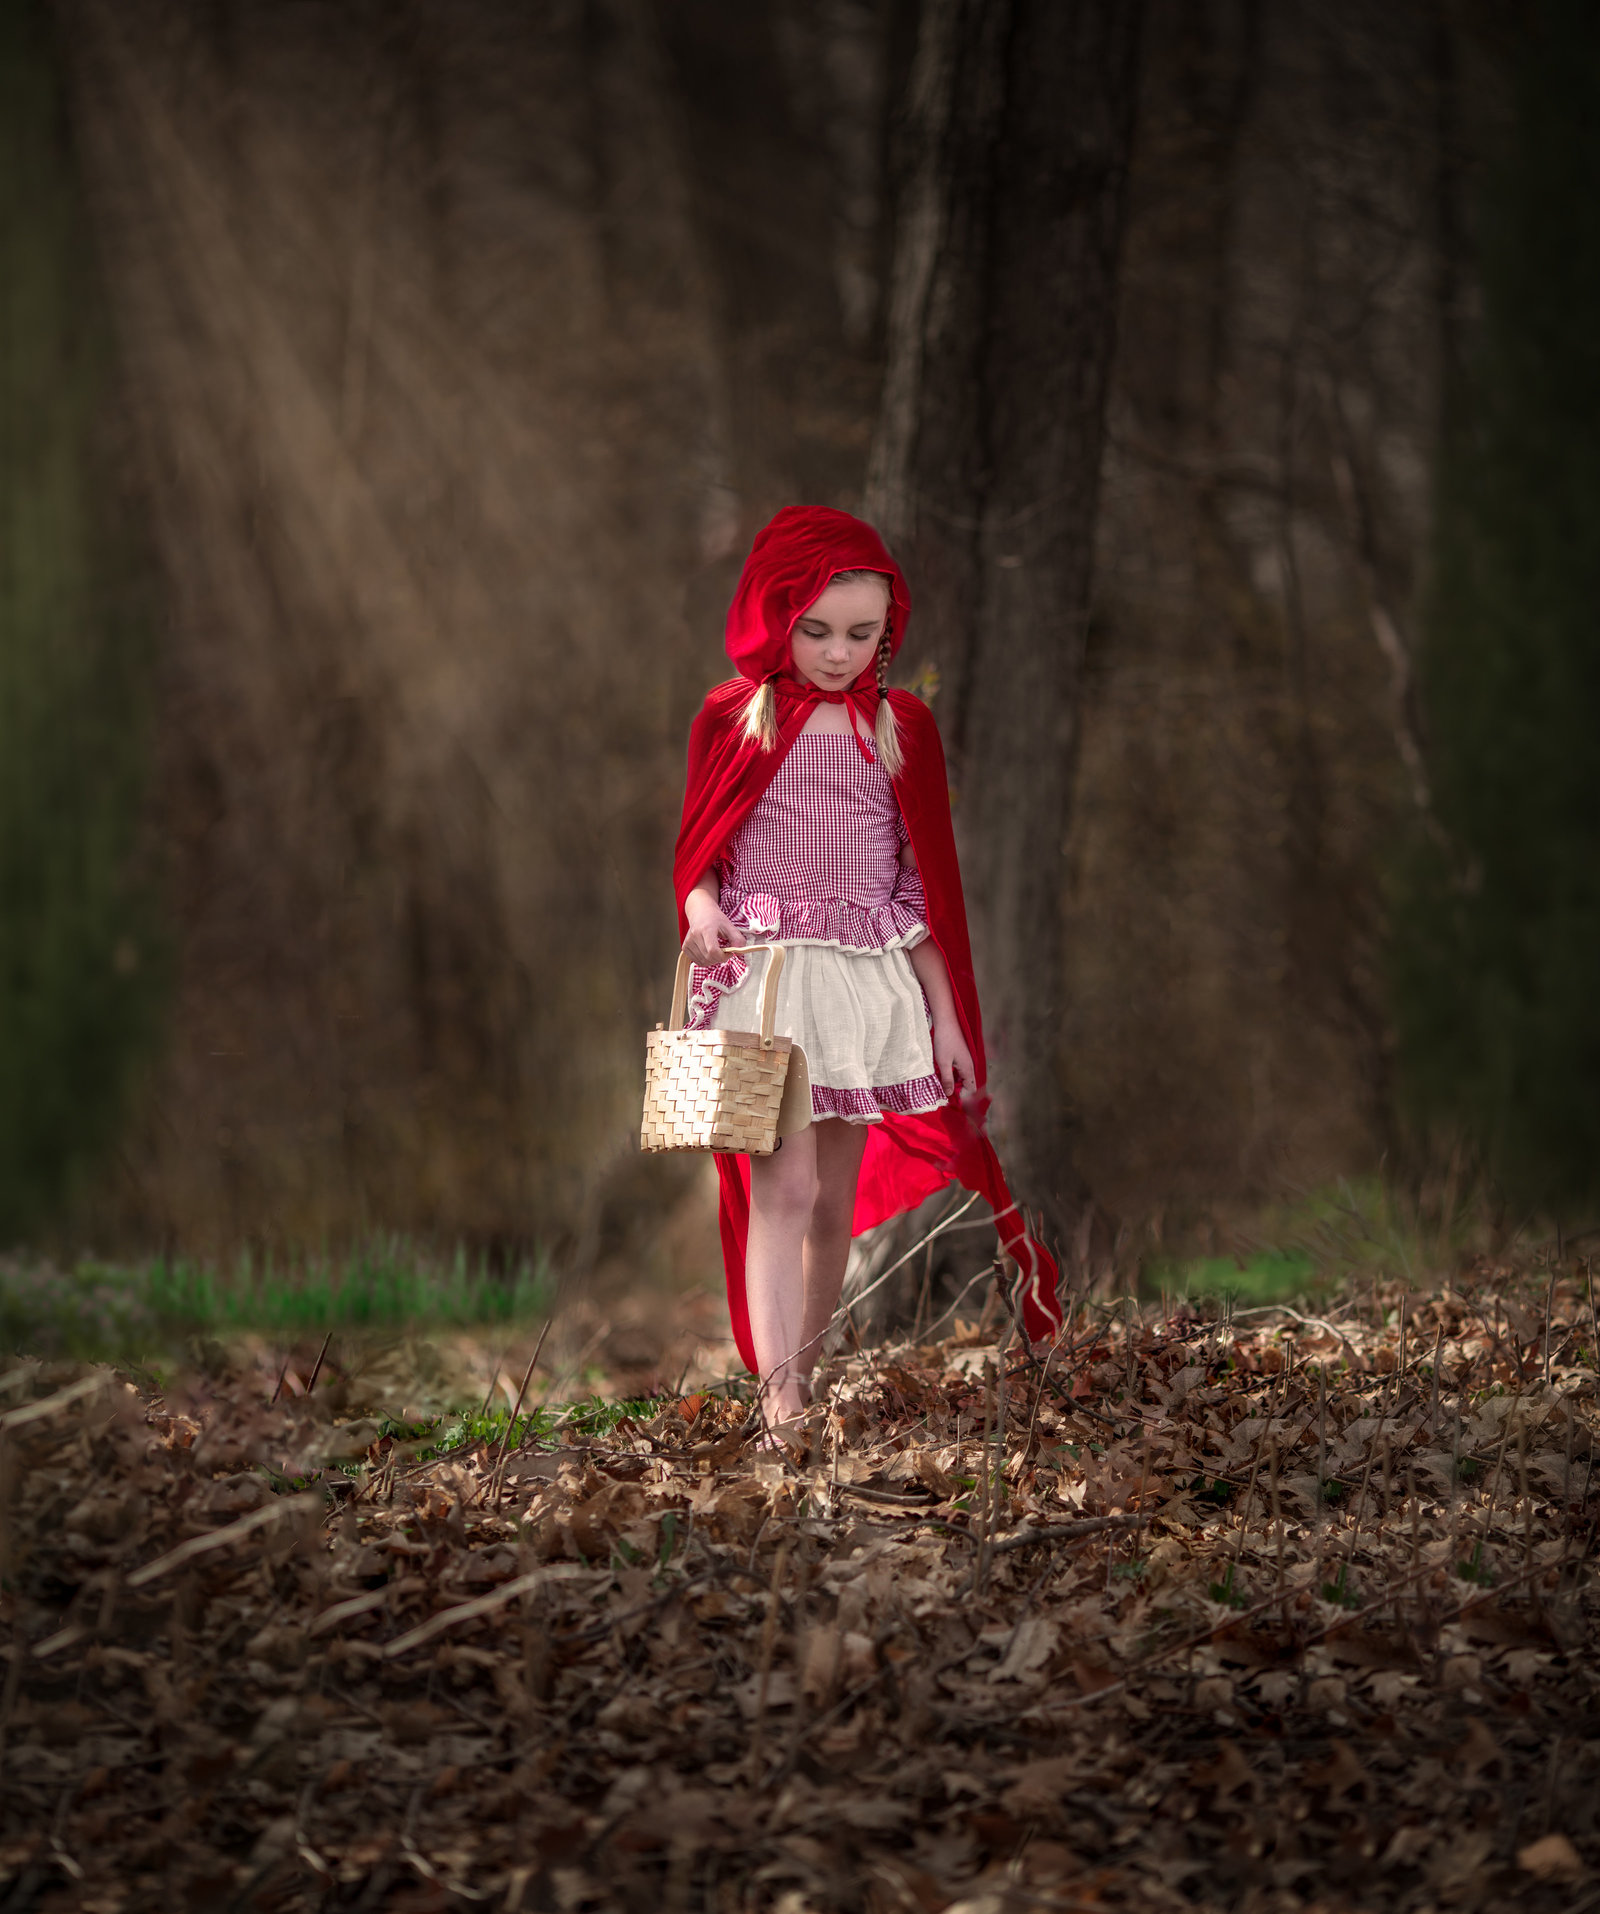 pretty dreams photography fairy tale photo session